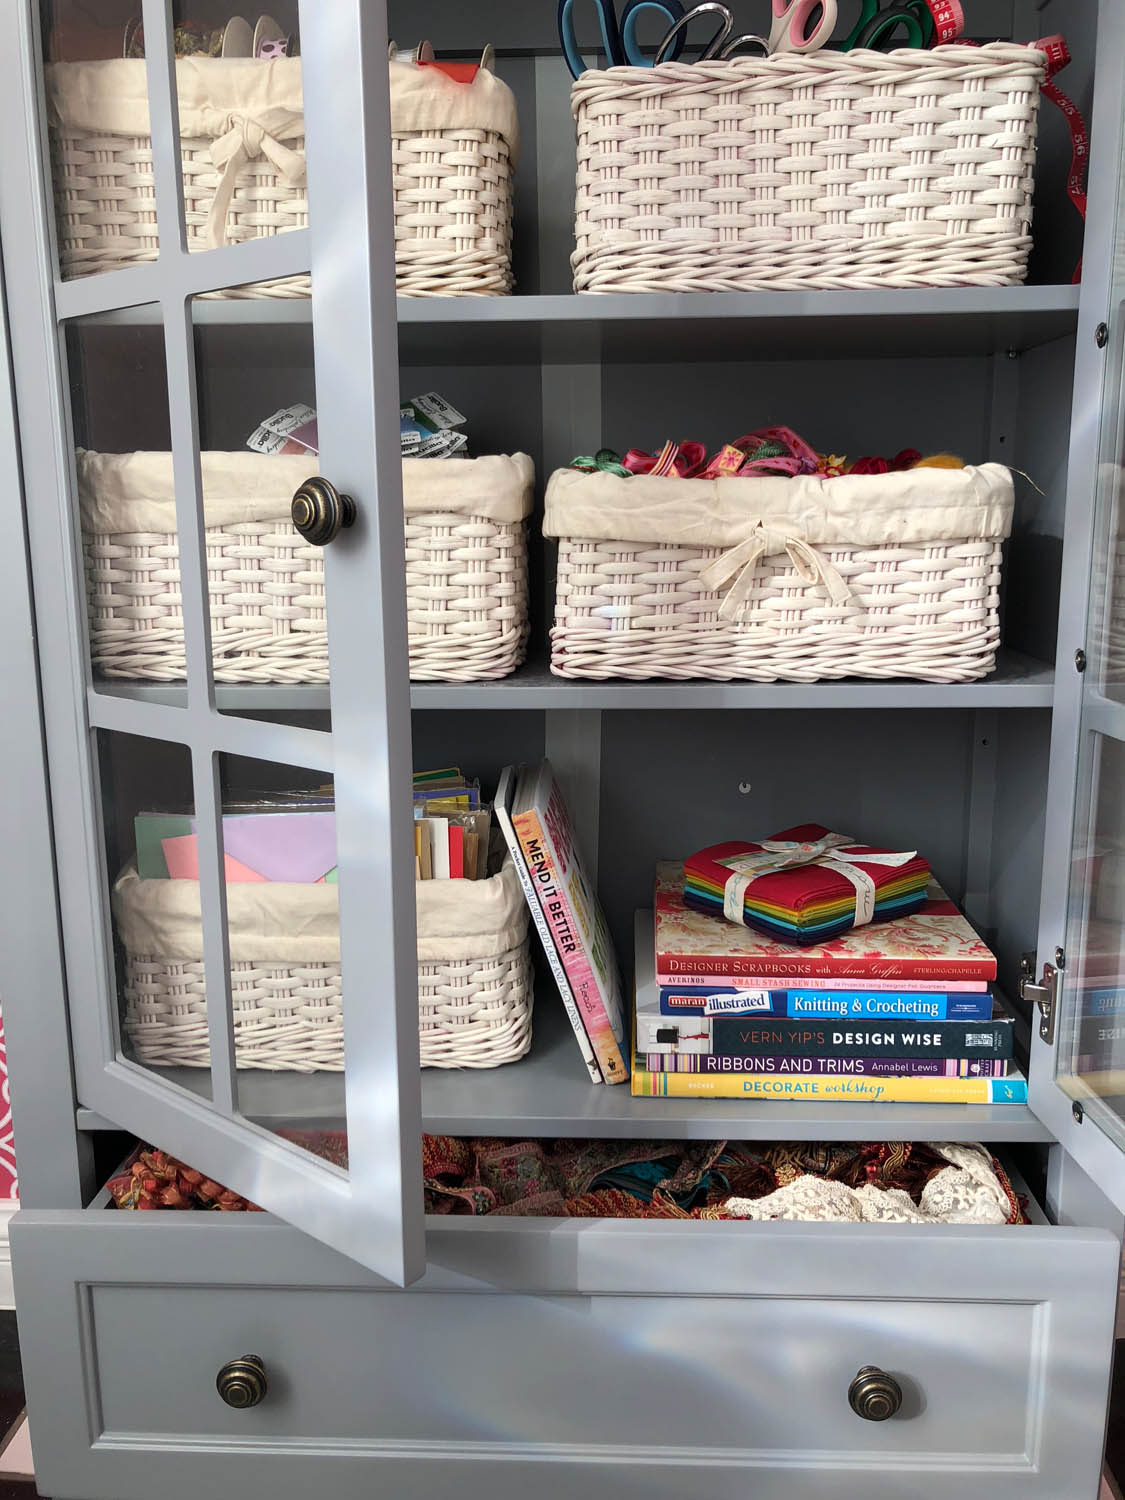 painted craft storage baskets on shelves